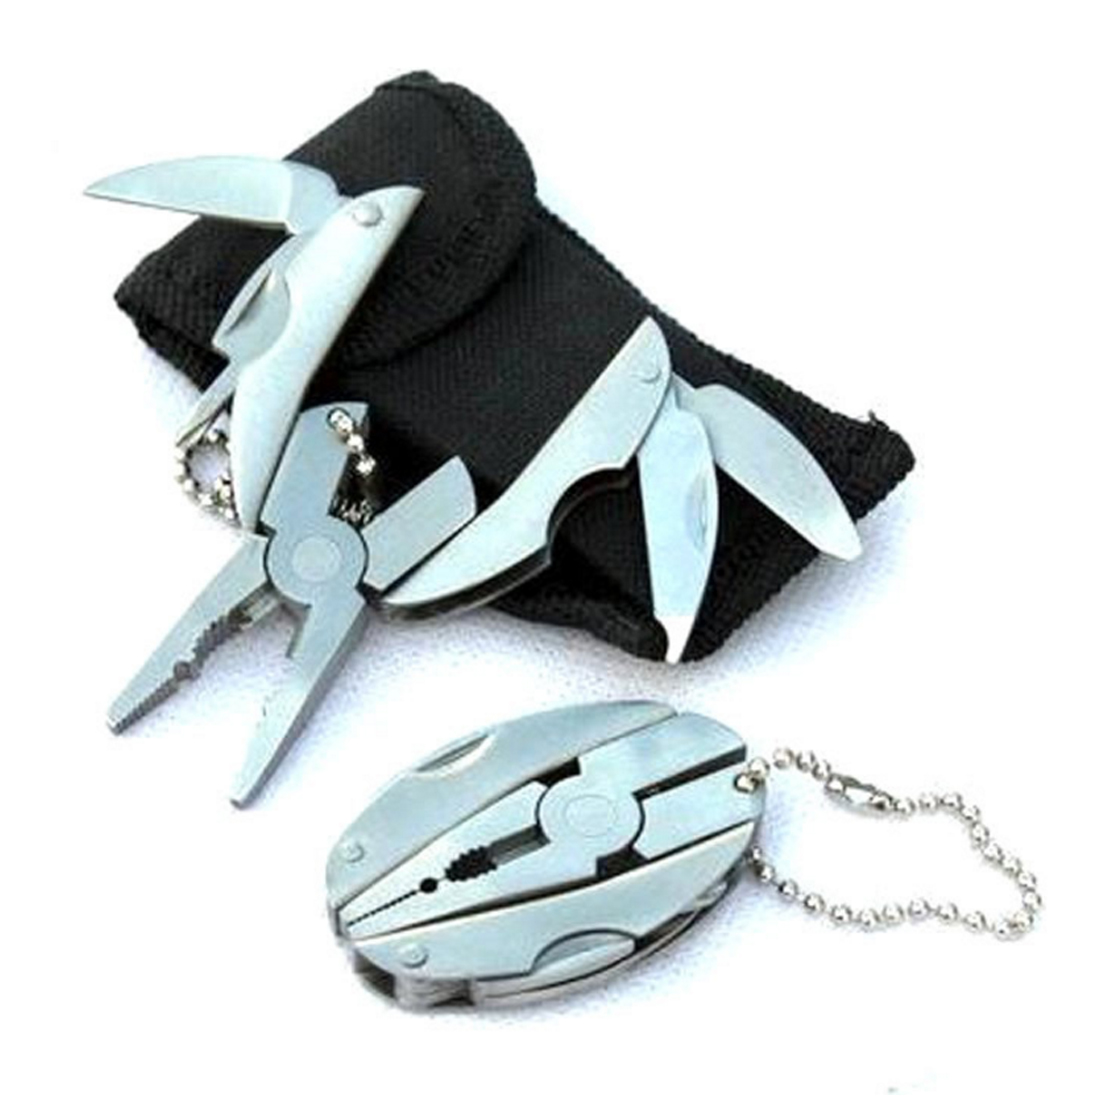 Portable Multifunction Folding Plier Stainless Steel Knife Keychain Screwdriver Camping Survival Tools Travel Kits Pocket Set